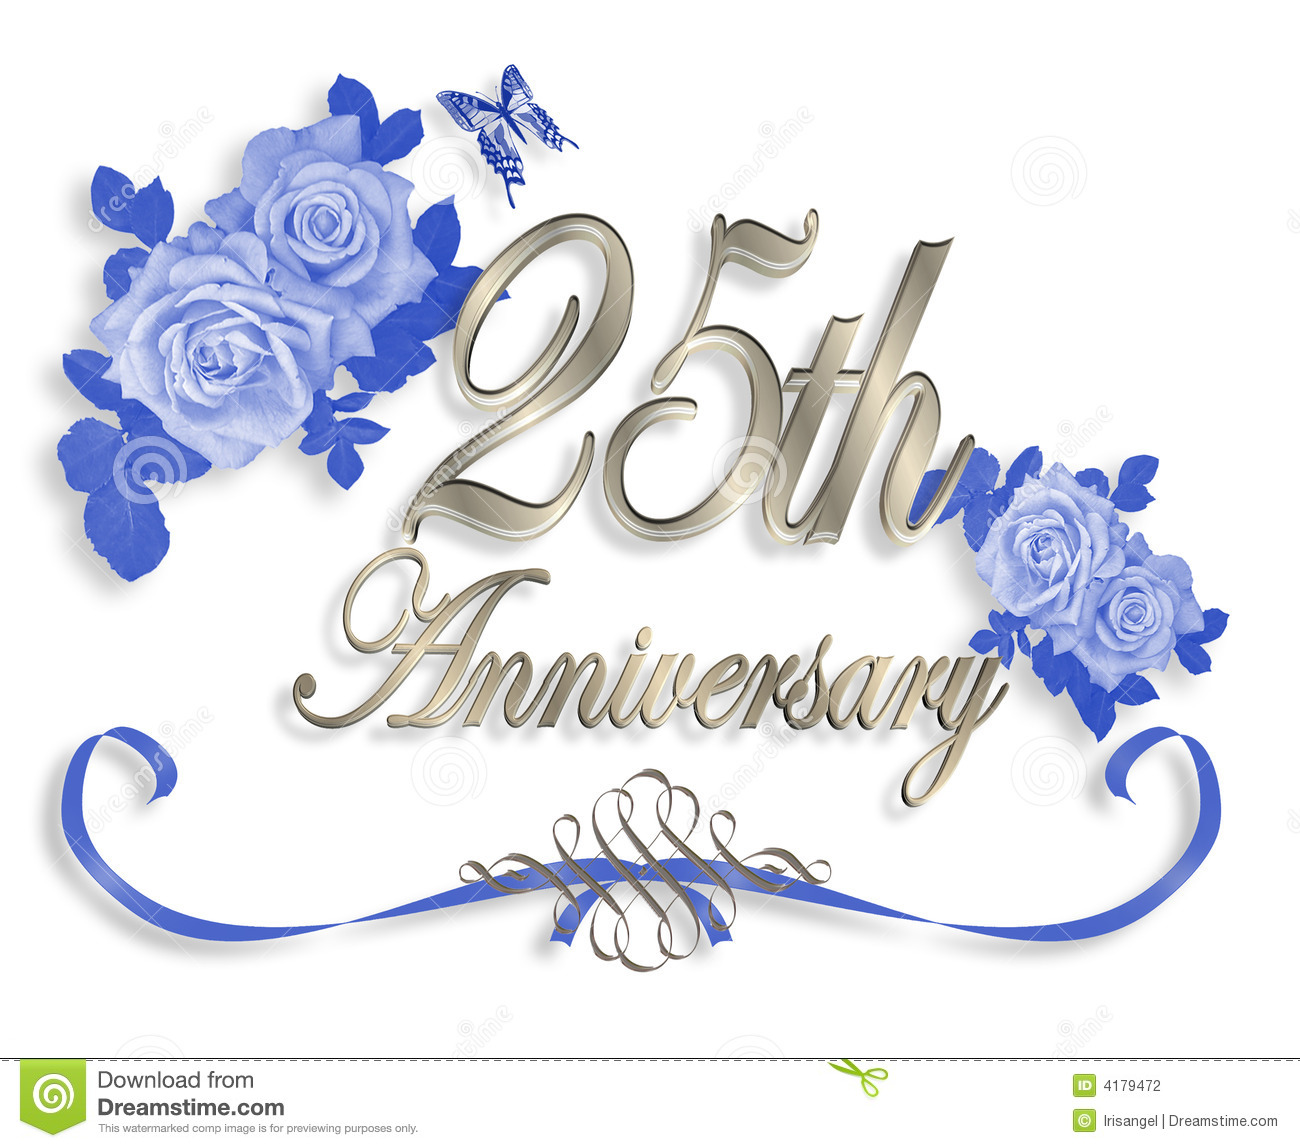 25th Anniversary Clipart Group with 54+ items.